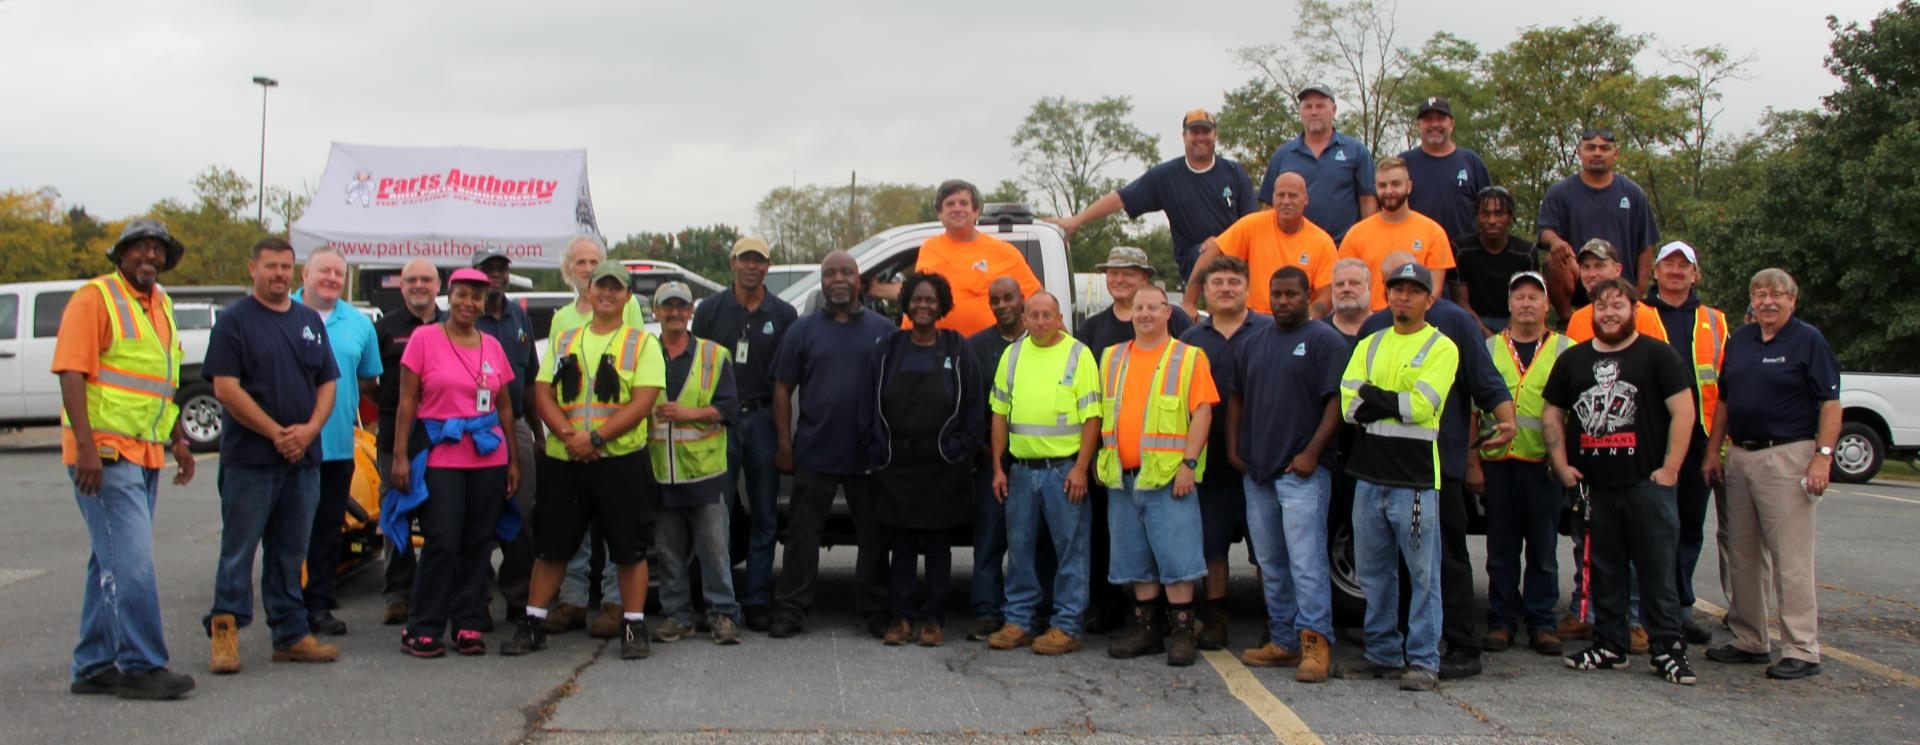 Large group w/ many people in high-visibility outerwear